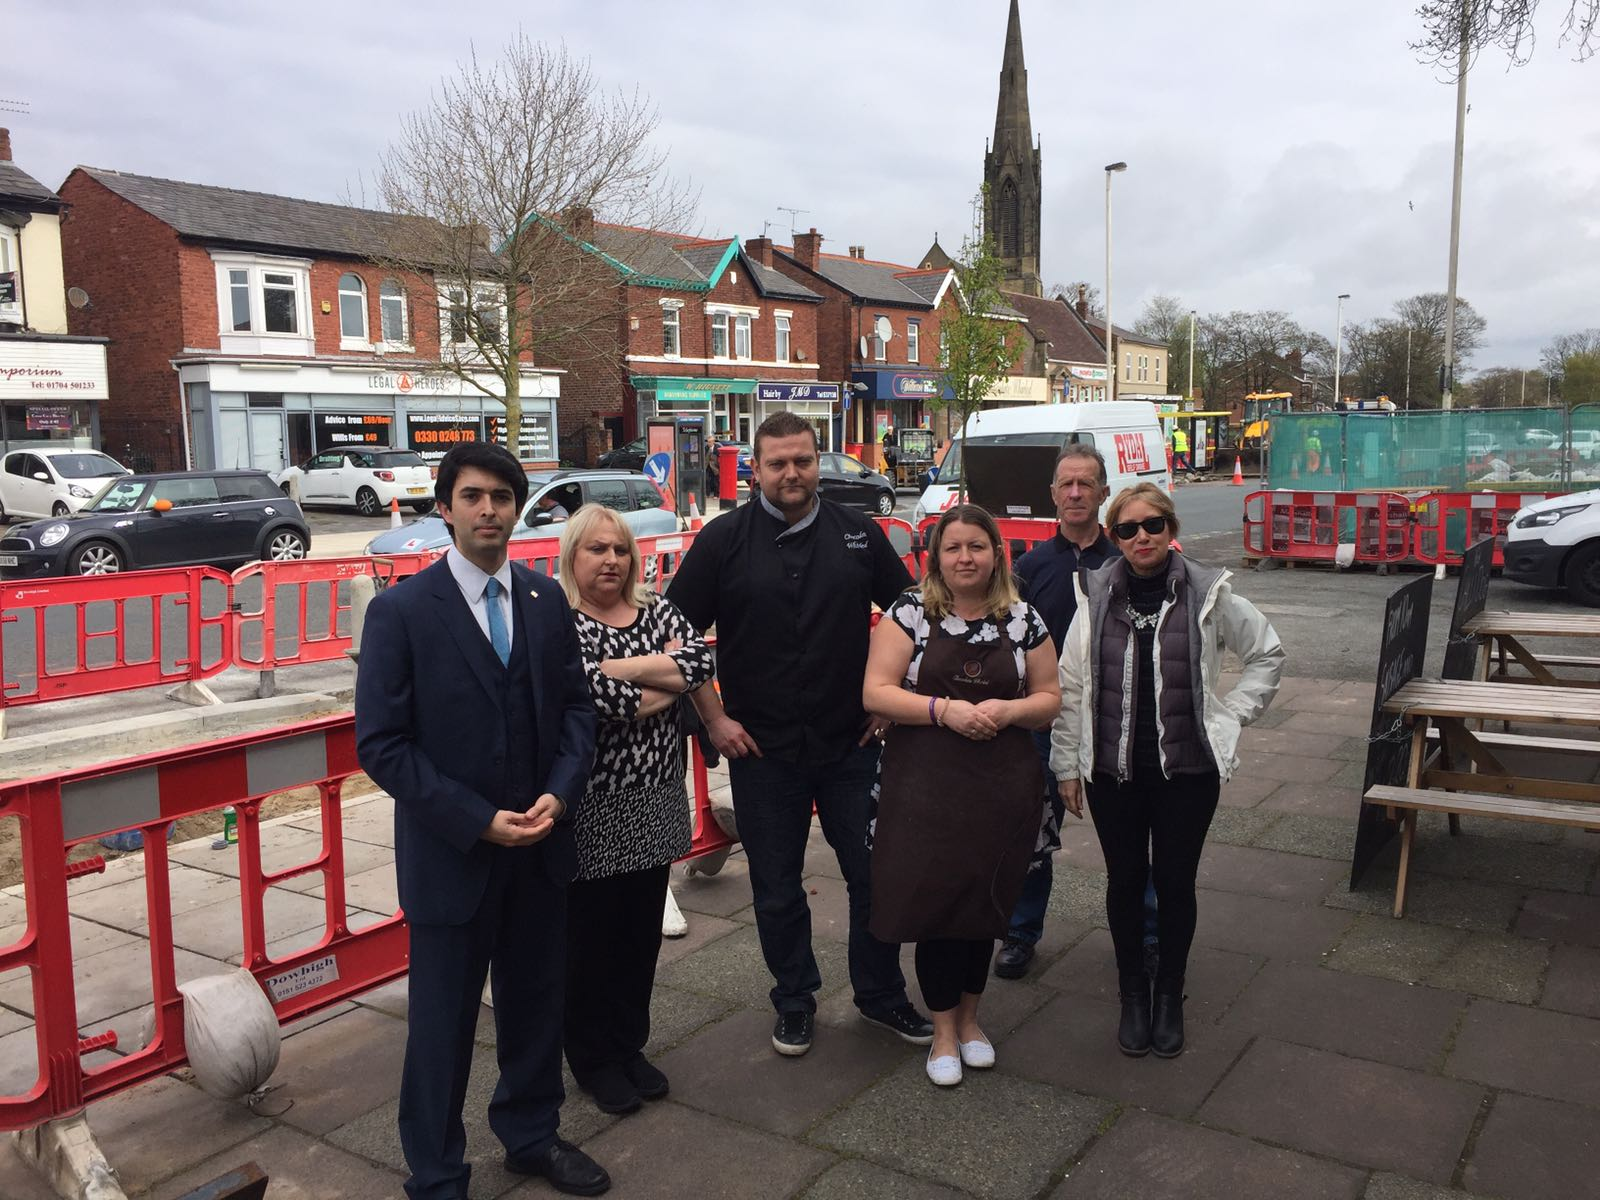 Council under fire for road closures